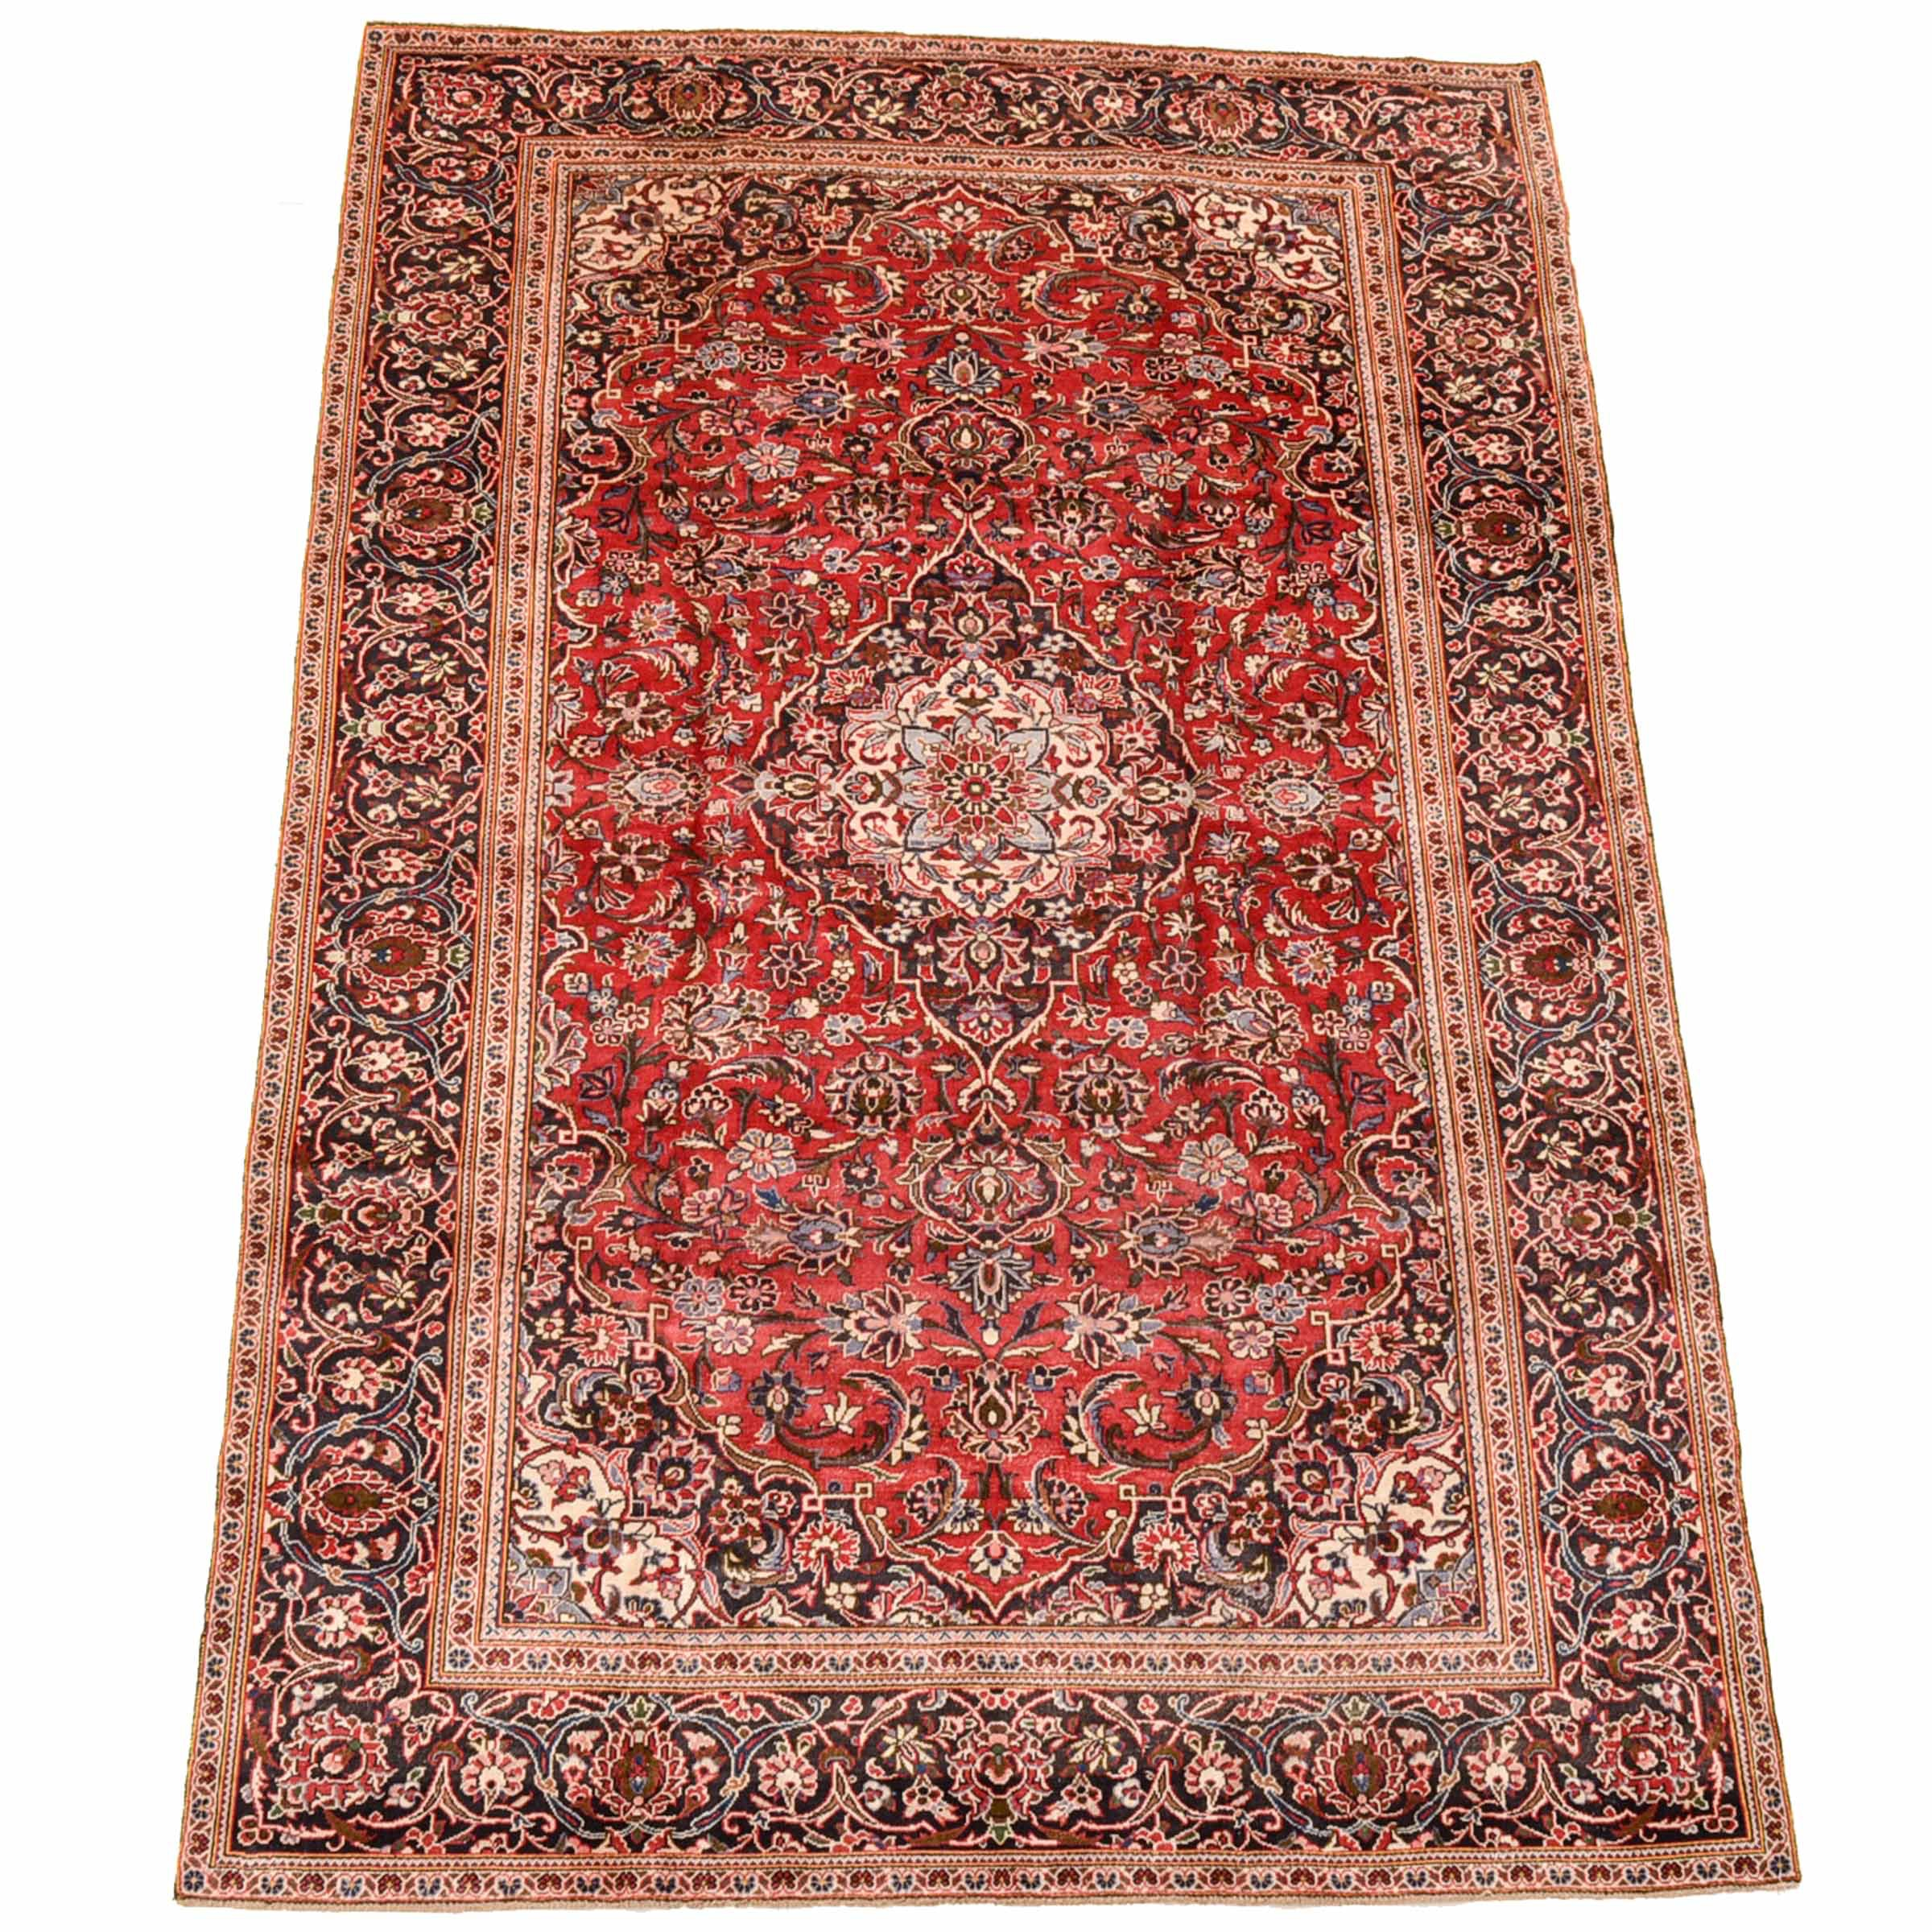 Hand-Knotted Persian Kashan Room-Size Rug